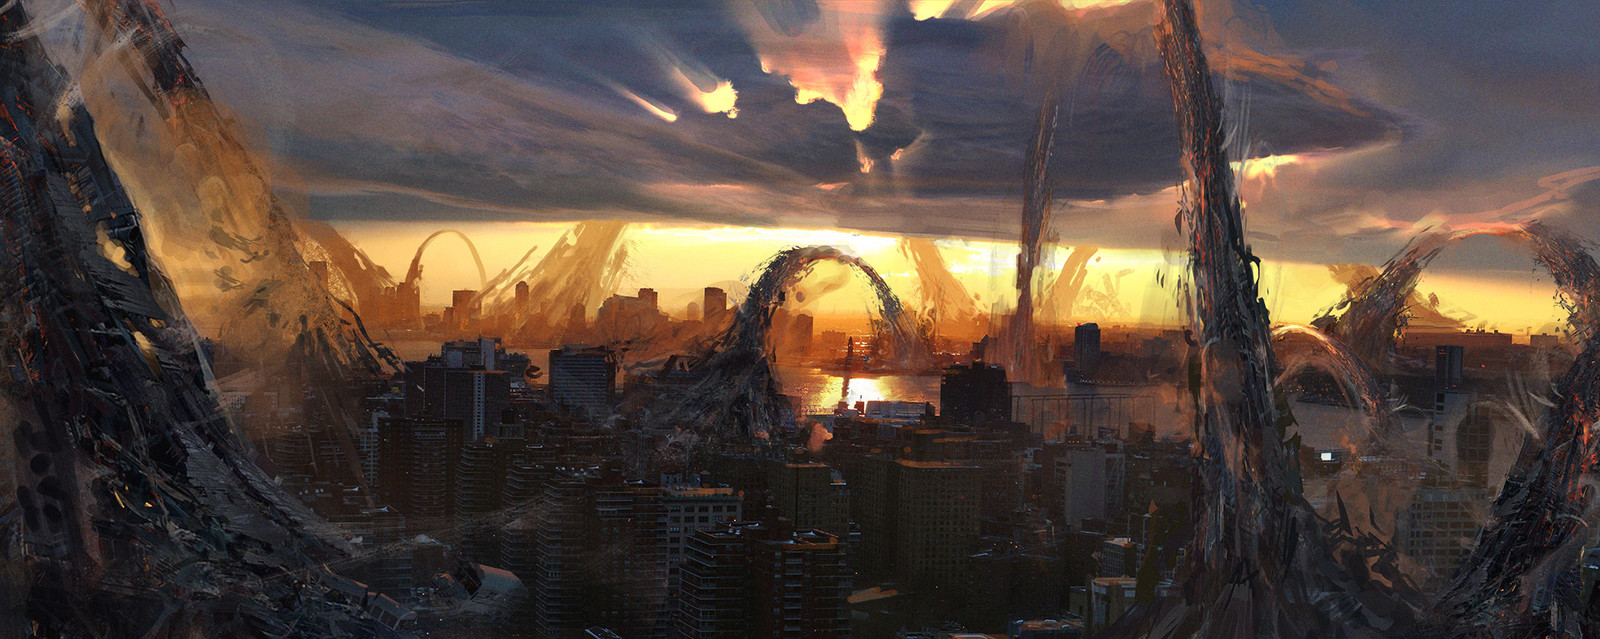 X-Men : Apocalyspe // Sunset destruction